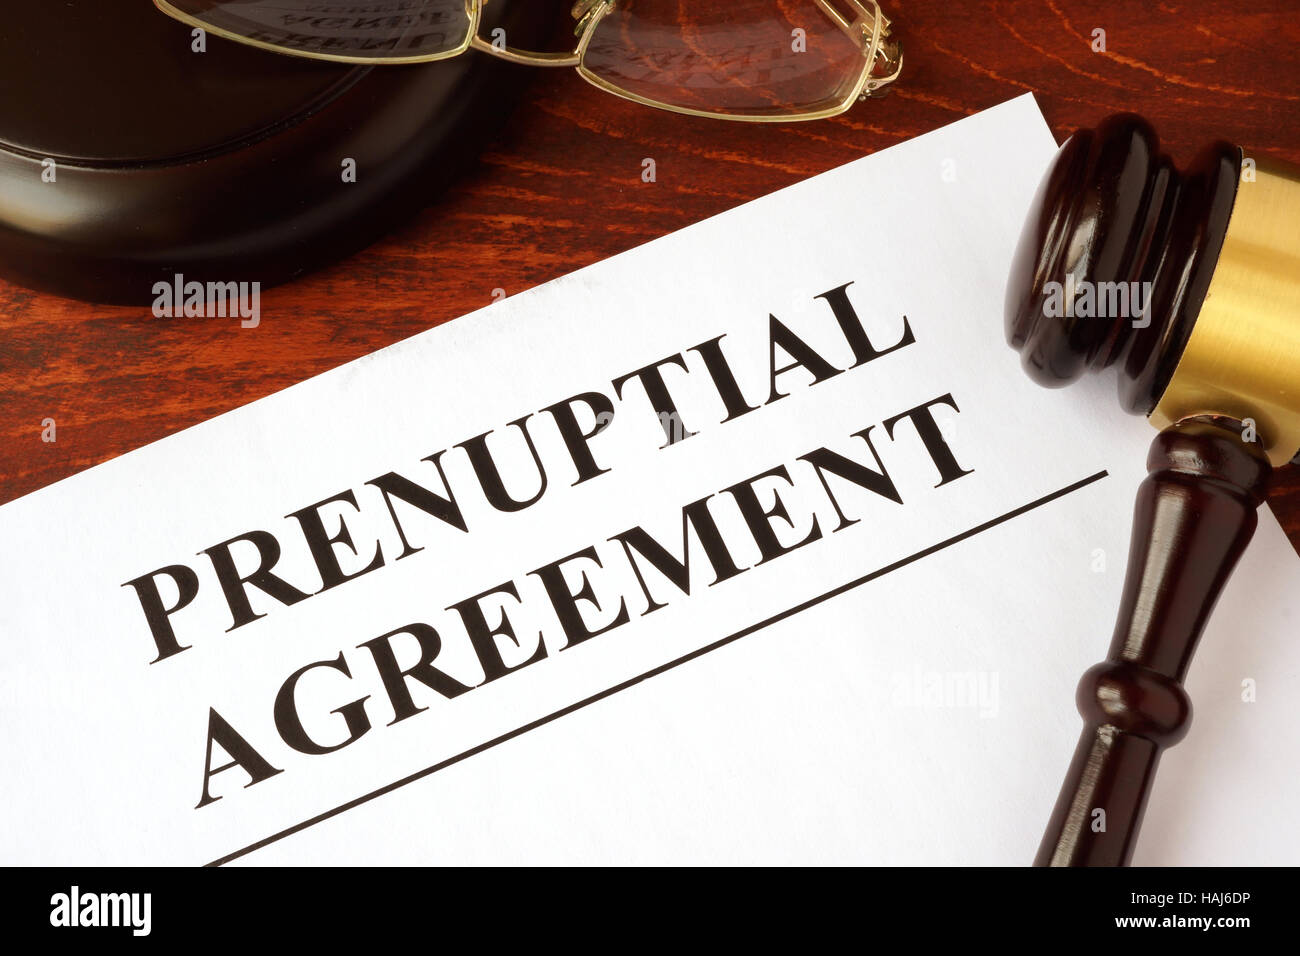 Papers with title prenuptial agreement on a table. Stock Photo